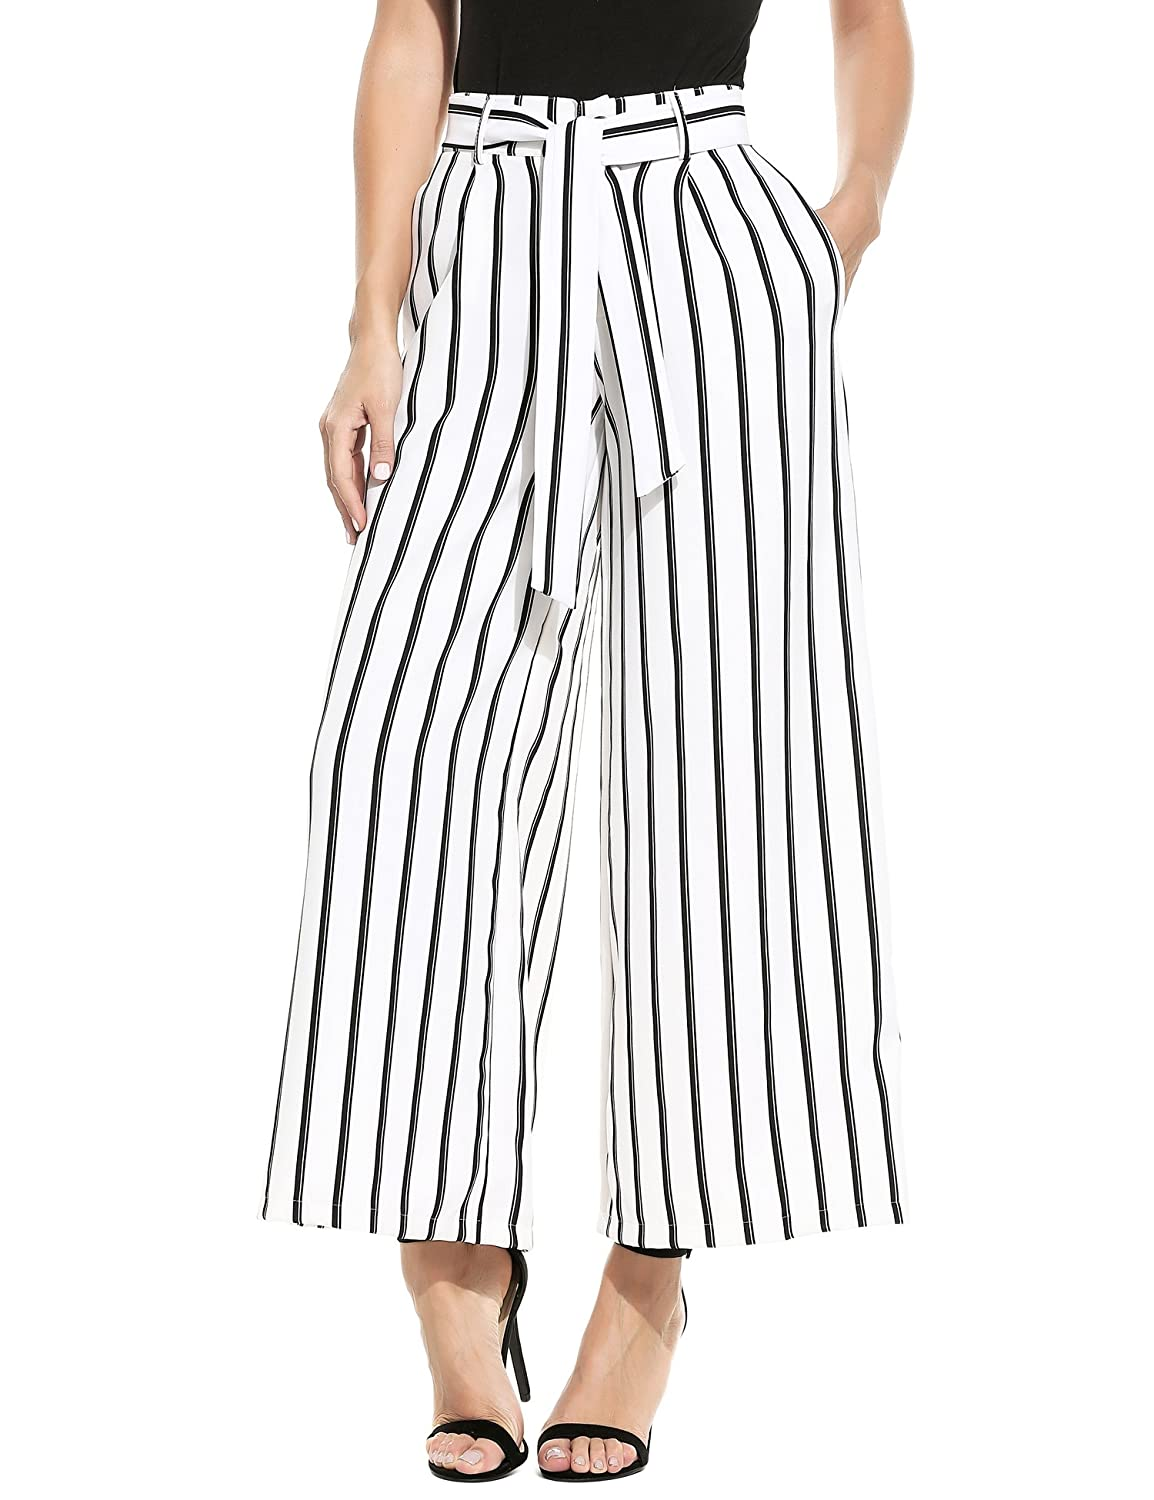 1940s Style Pants & Overalls- Wide Leg, High Waist Zeagoo Womens Super Comfy Stripe Flowy Wide Leg High Waist Belted Palazzo Pants Capris $22.99 AT vintagedancer.com